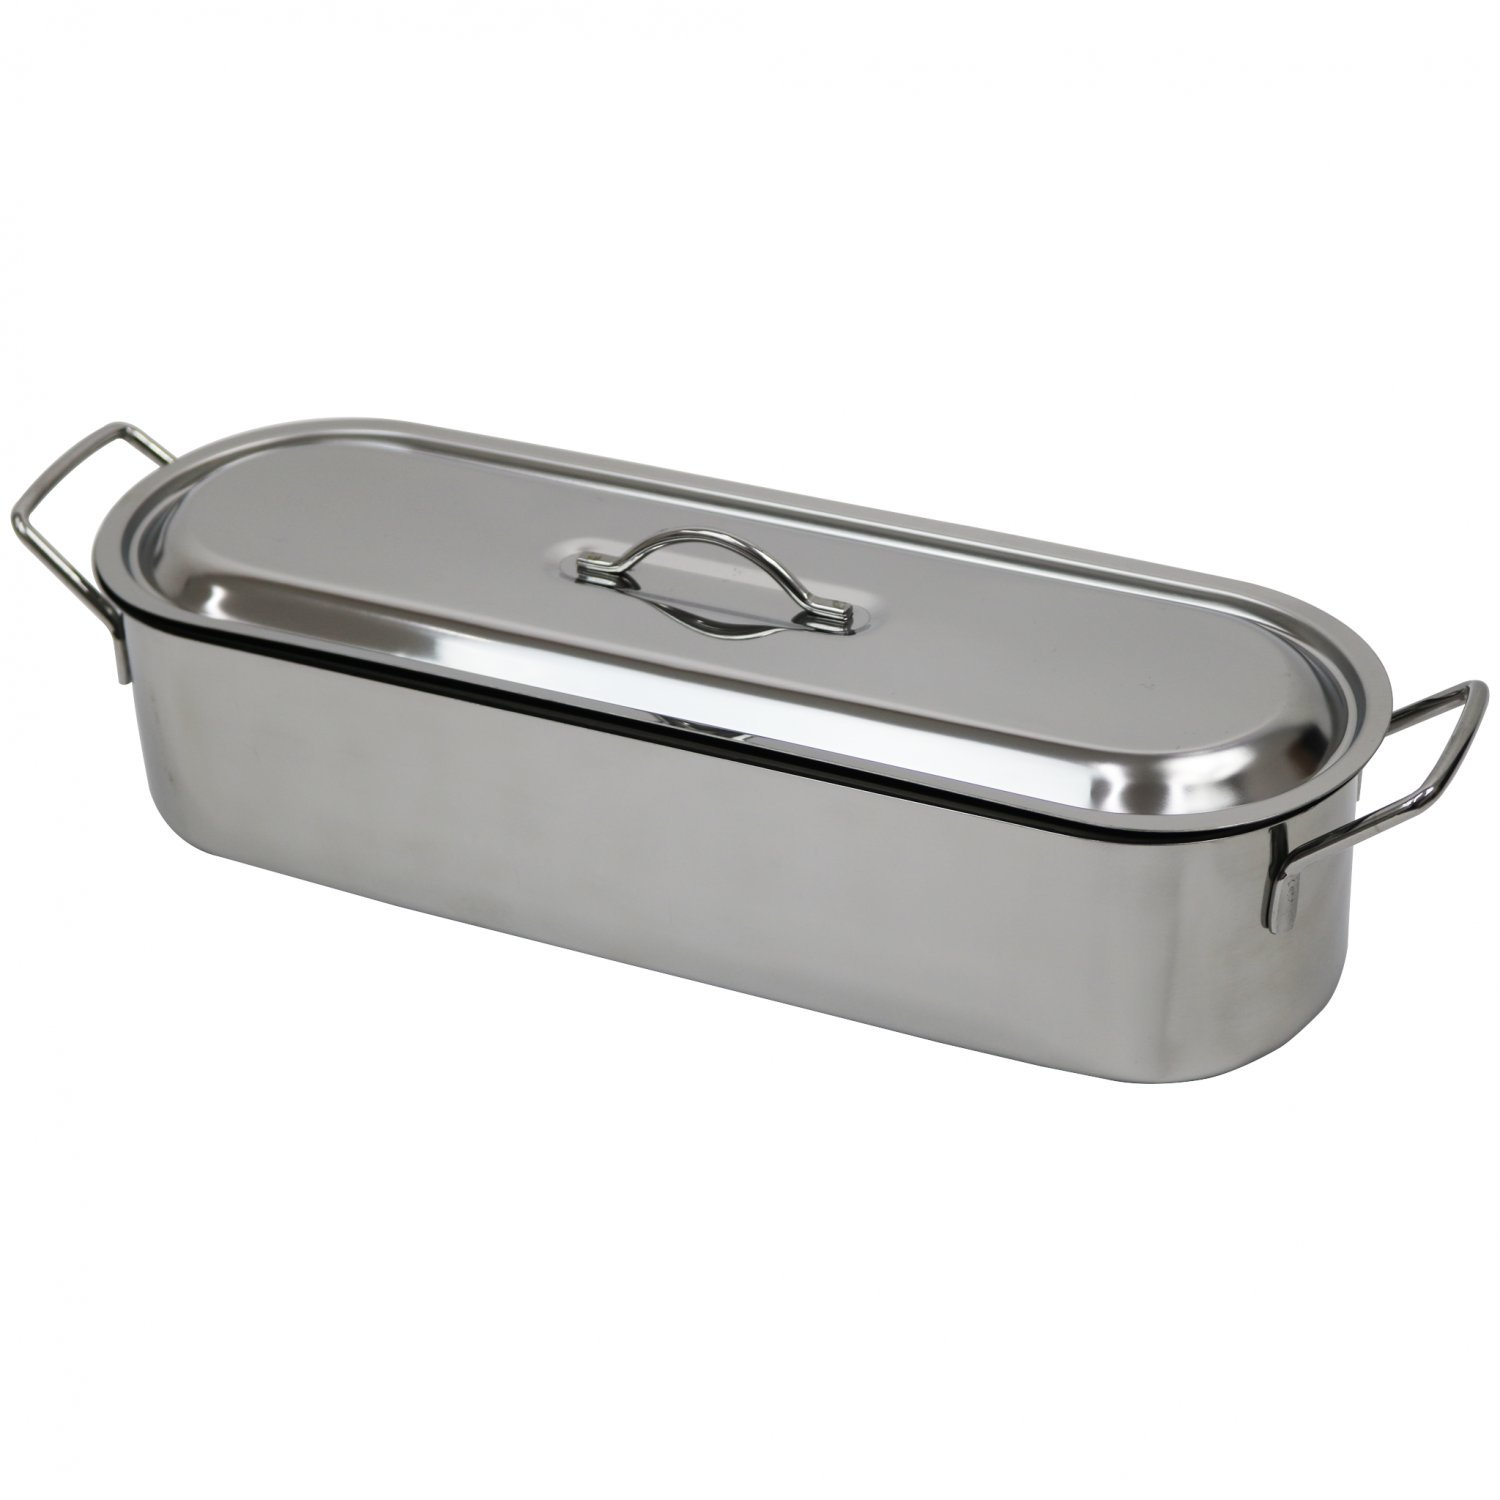 7.5L 46cm Stainless Steel Fish Poacher Steamer Poaching Pan